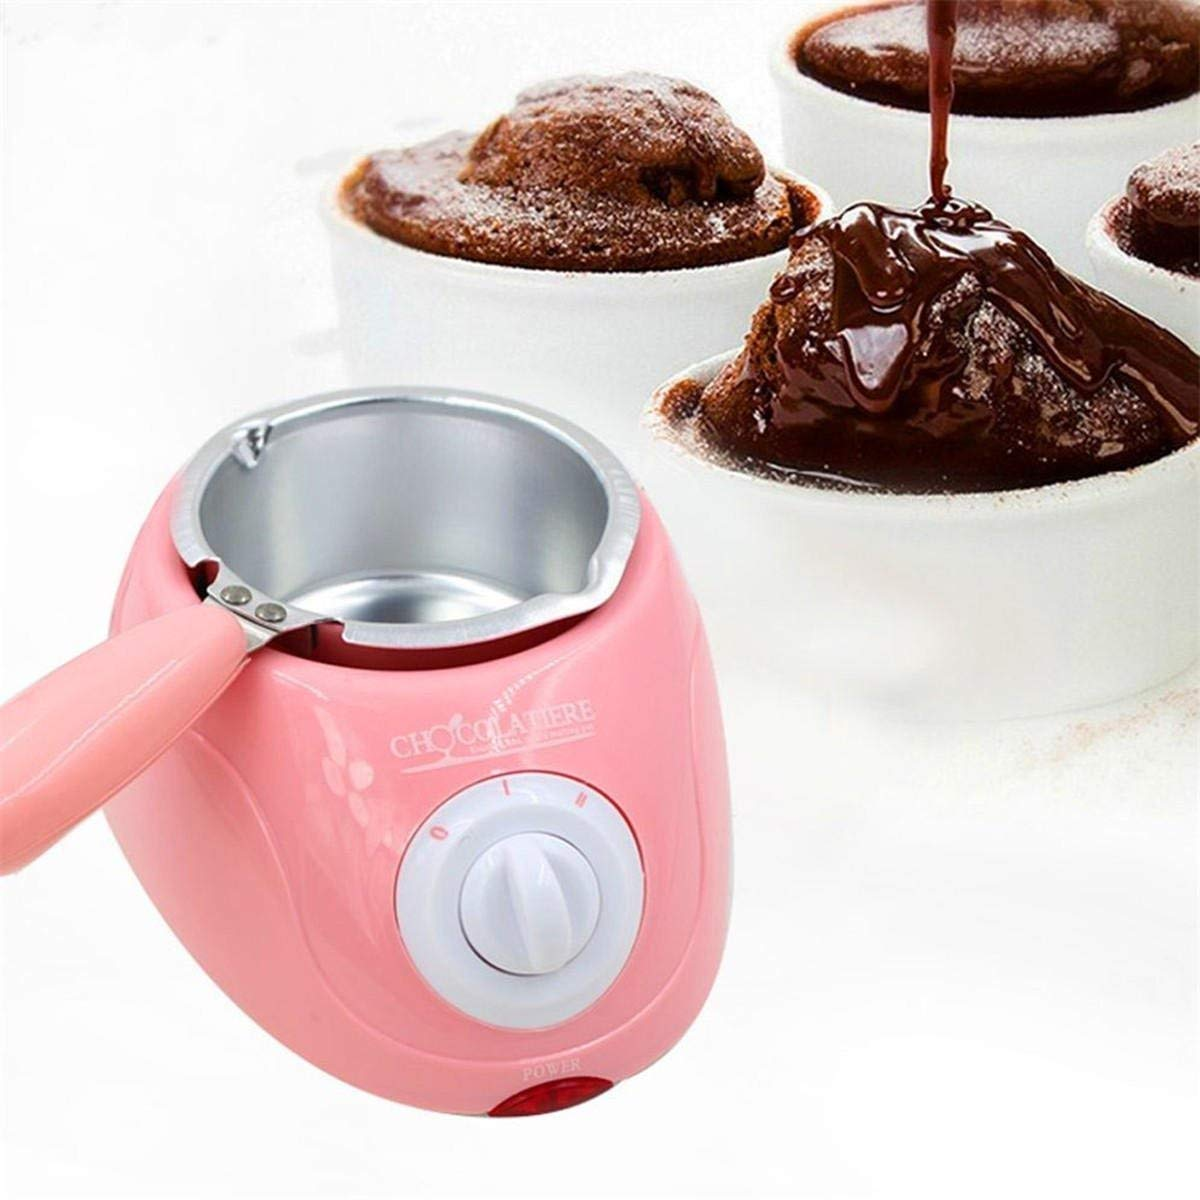 Candy Melting Pot, GIGRIN Electric Chocolate Melting Pot 250ml Chocolate Fondue with 21 Free Accessories, for Chocolate, Candy, Butter, Cheese, Caramel (Pink & Single Pot)